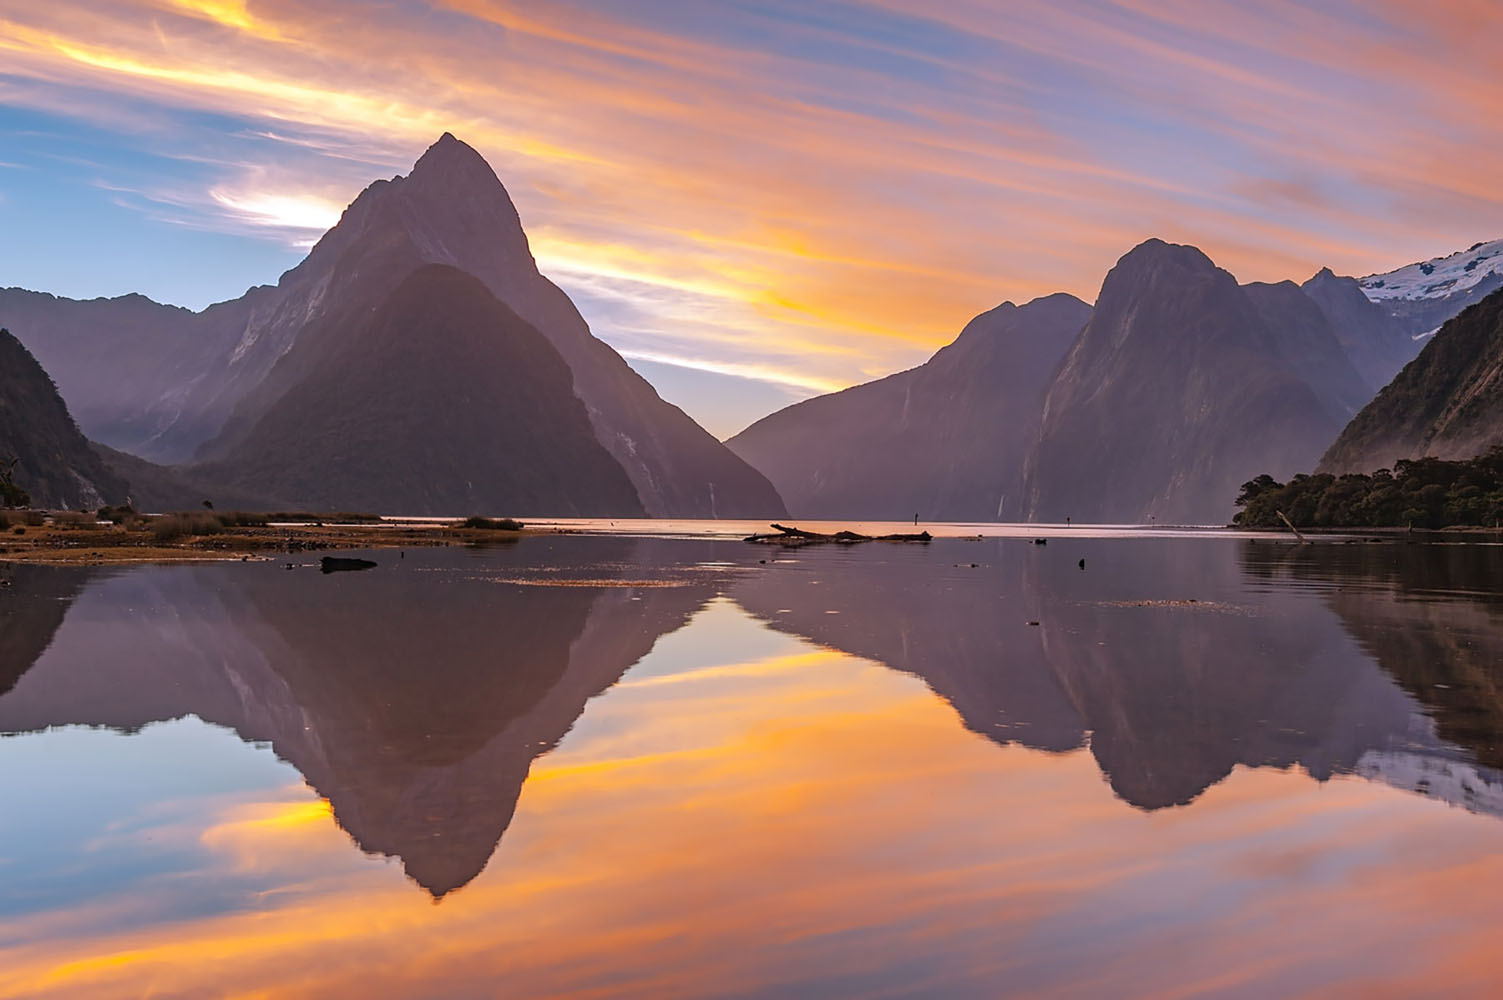 Milford Sound, South Island, New Zealand at golden hour